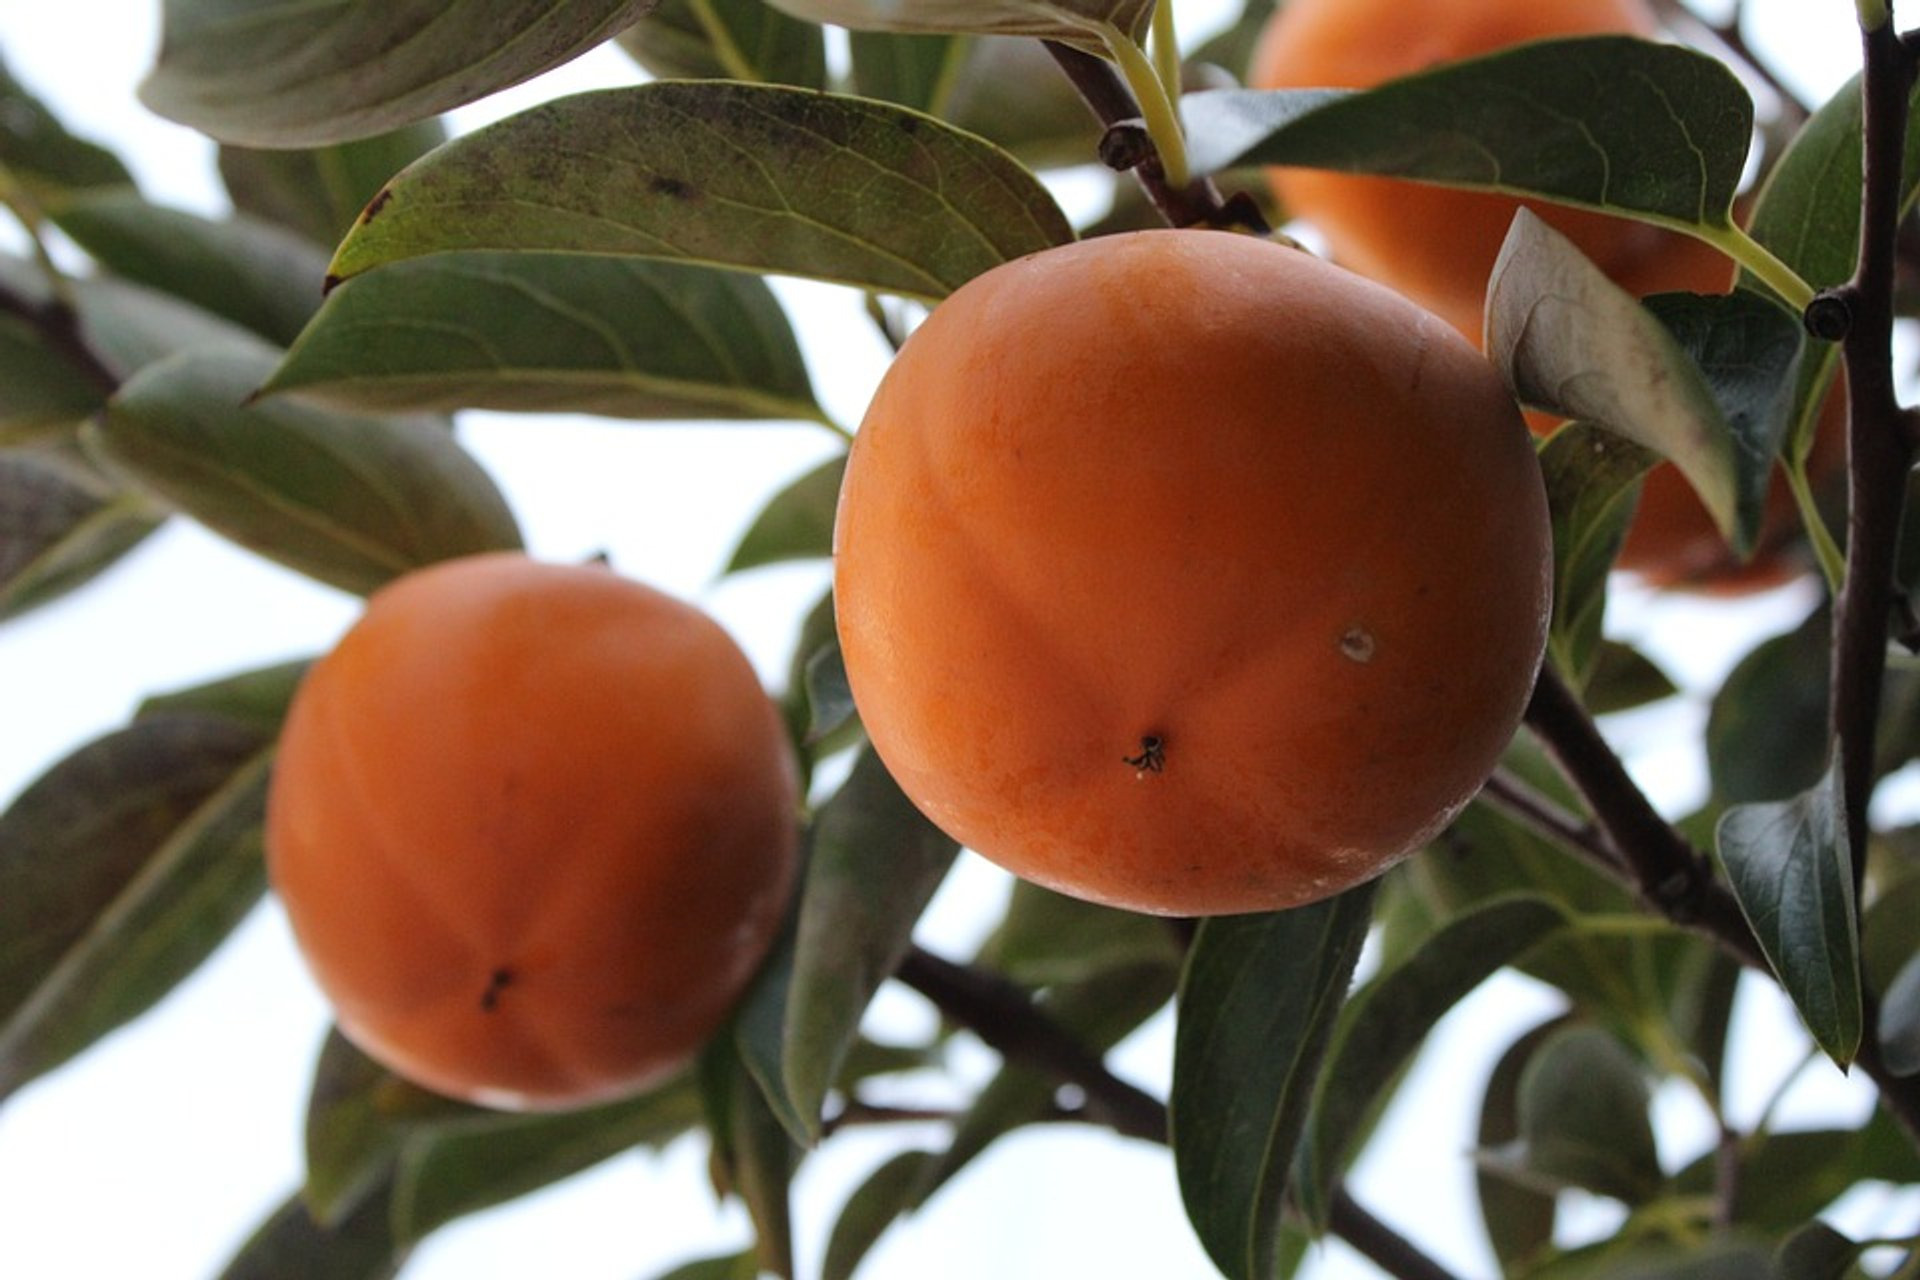 Persimmon Harvest and Gotgam Making in South Korea - Best Season 2019